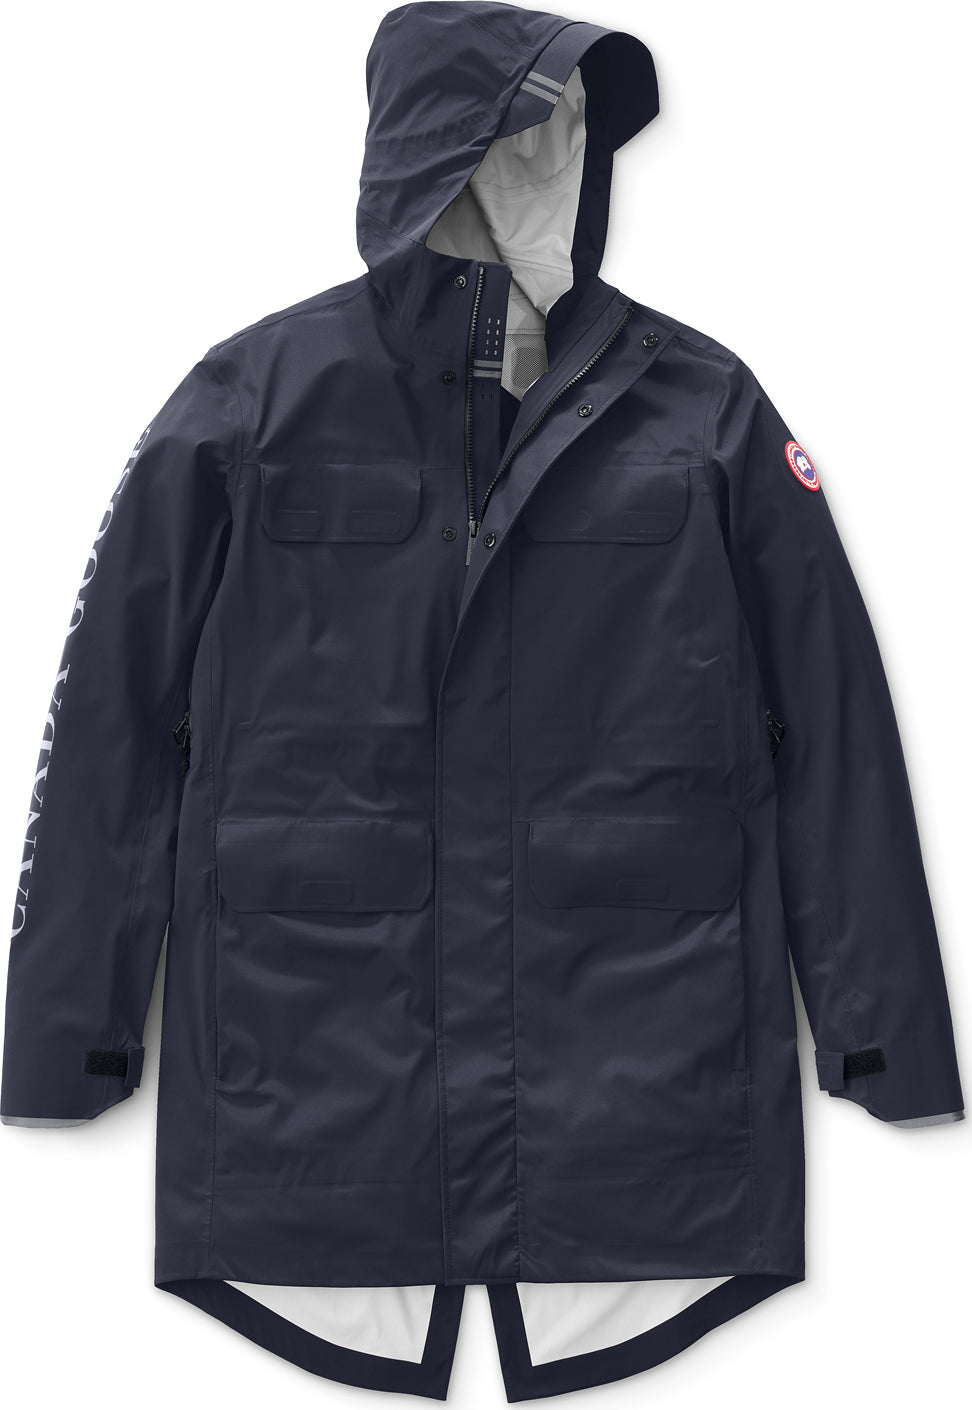 best wholesaler special promotion good out x Canada Goose Seawolf Jacket - Men's | Altitude Sports